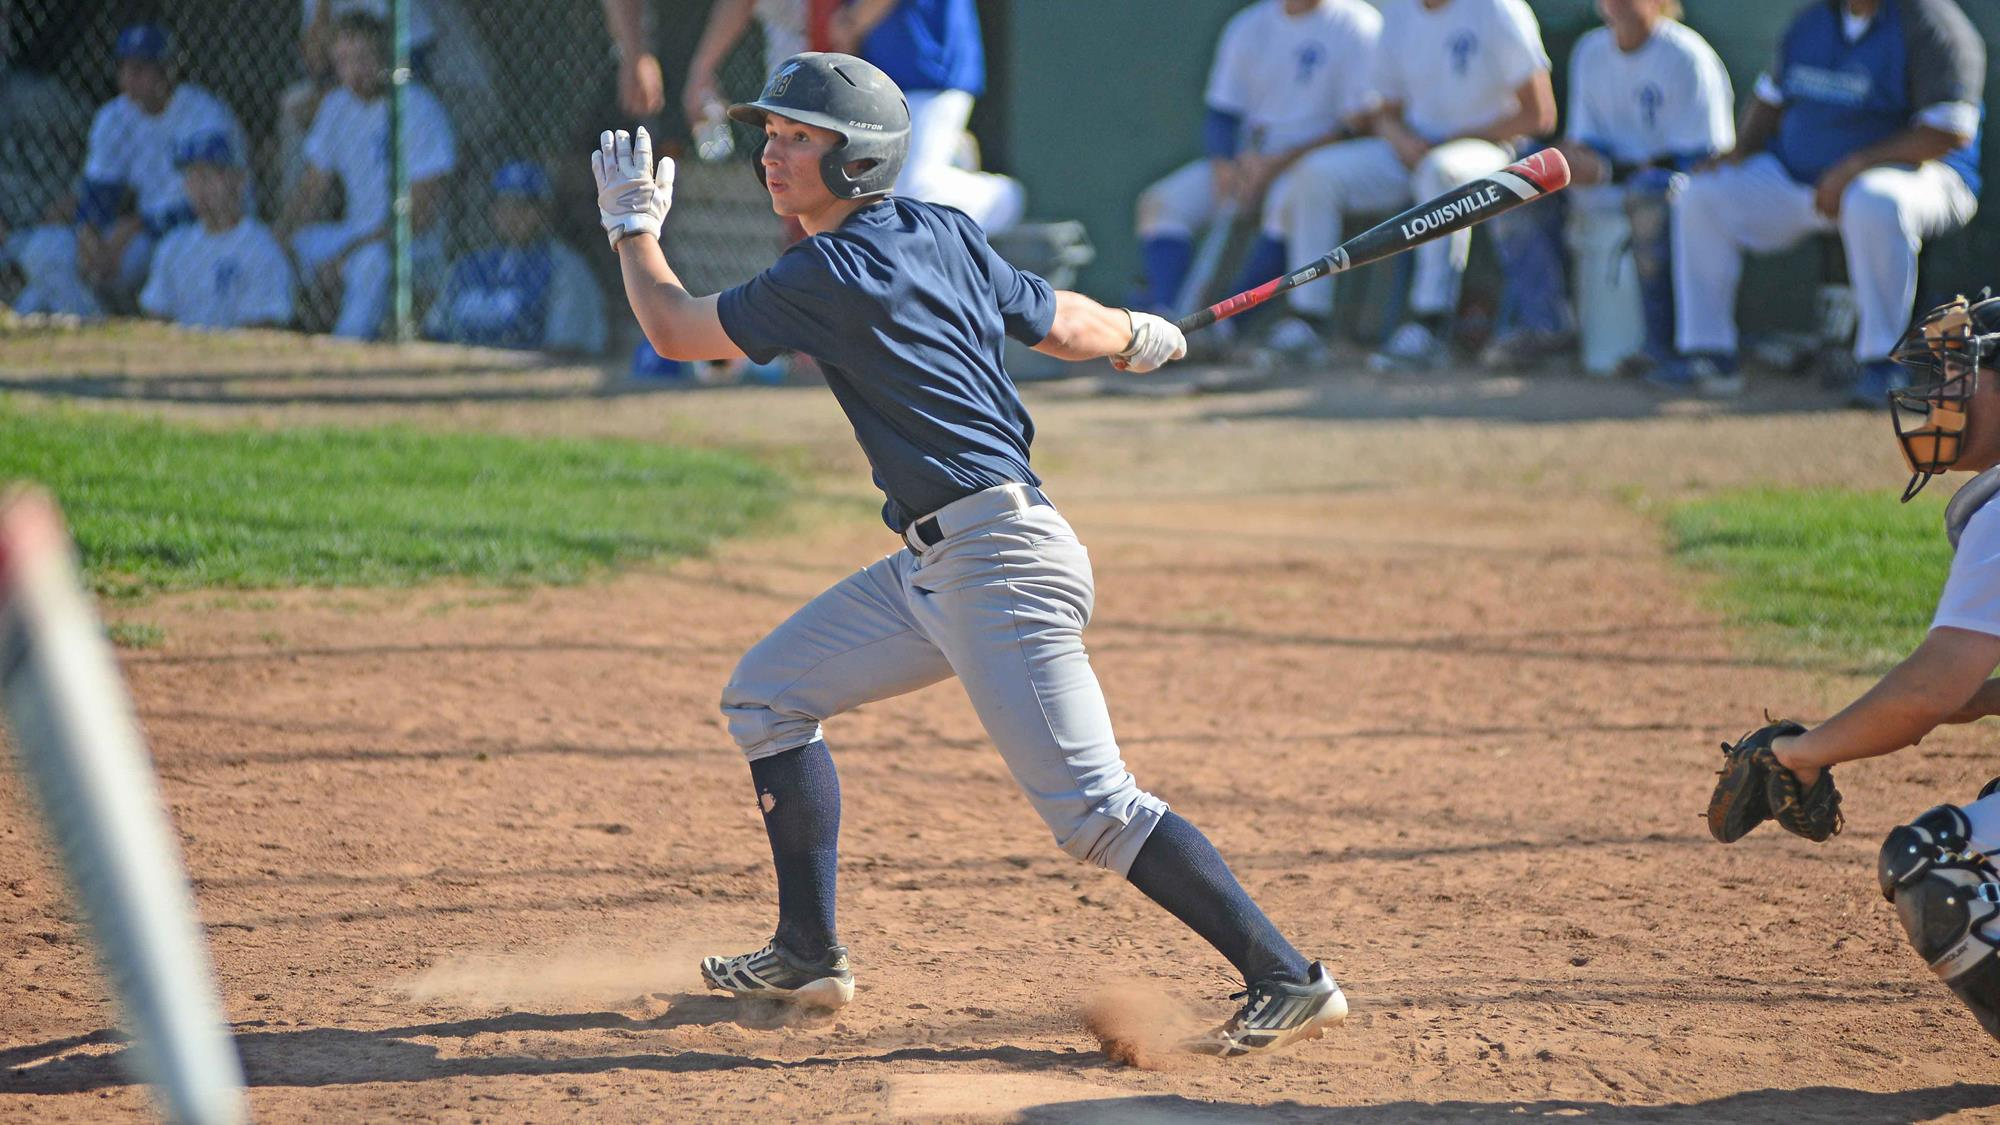 New Faces: MSUB Baseball freshman Max Hartgraves - Montana